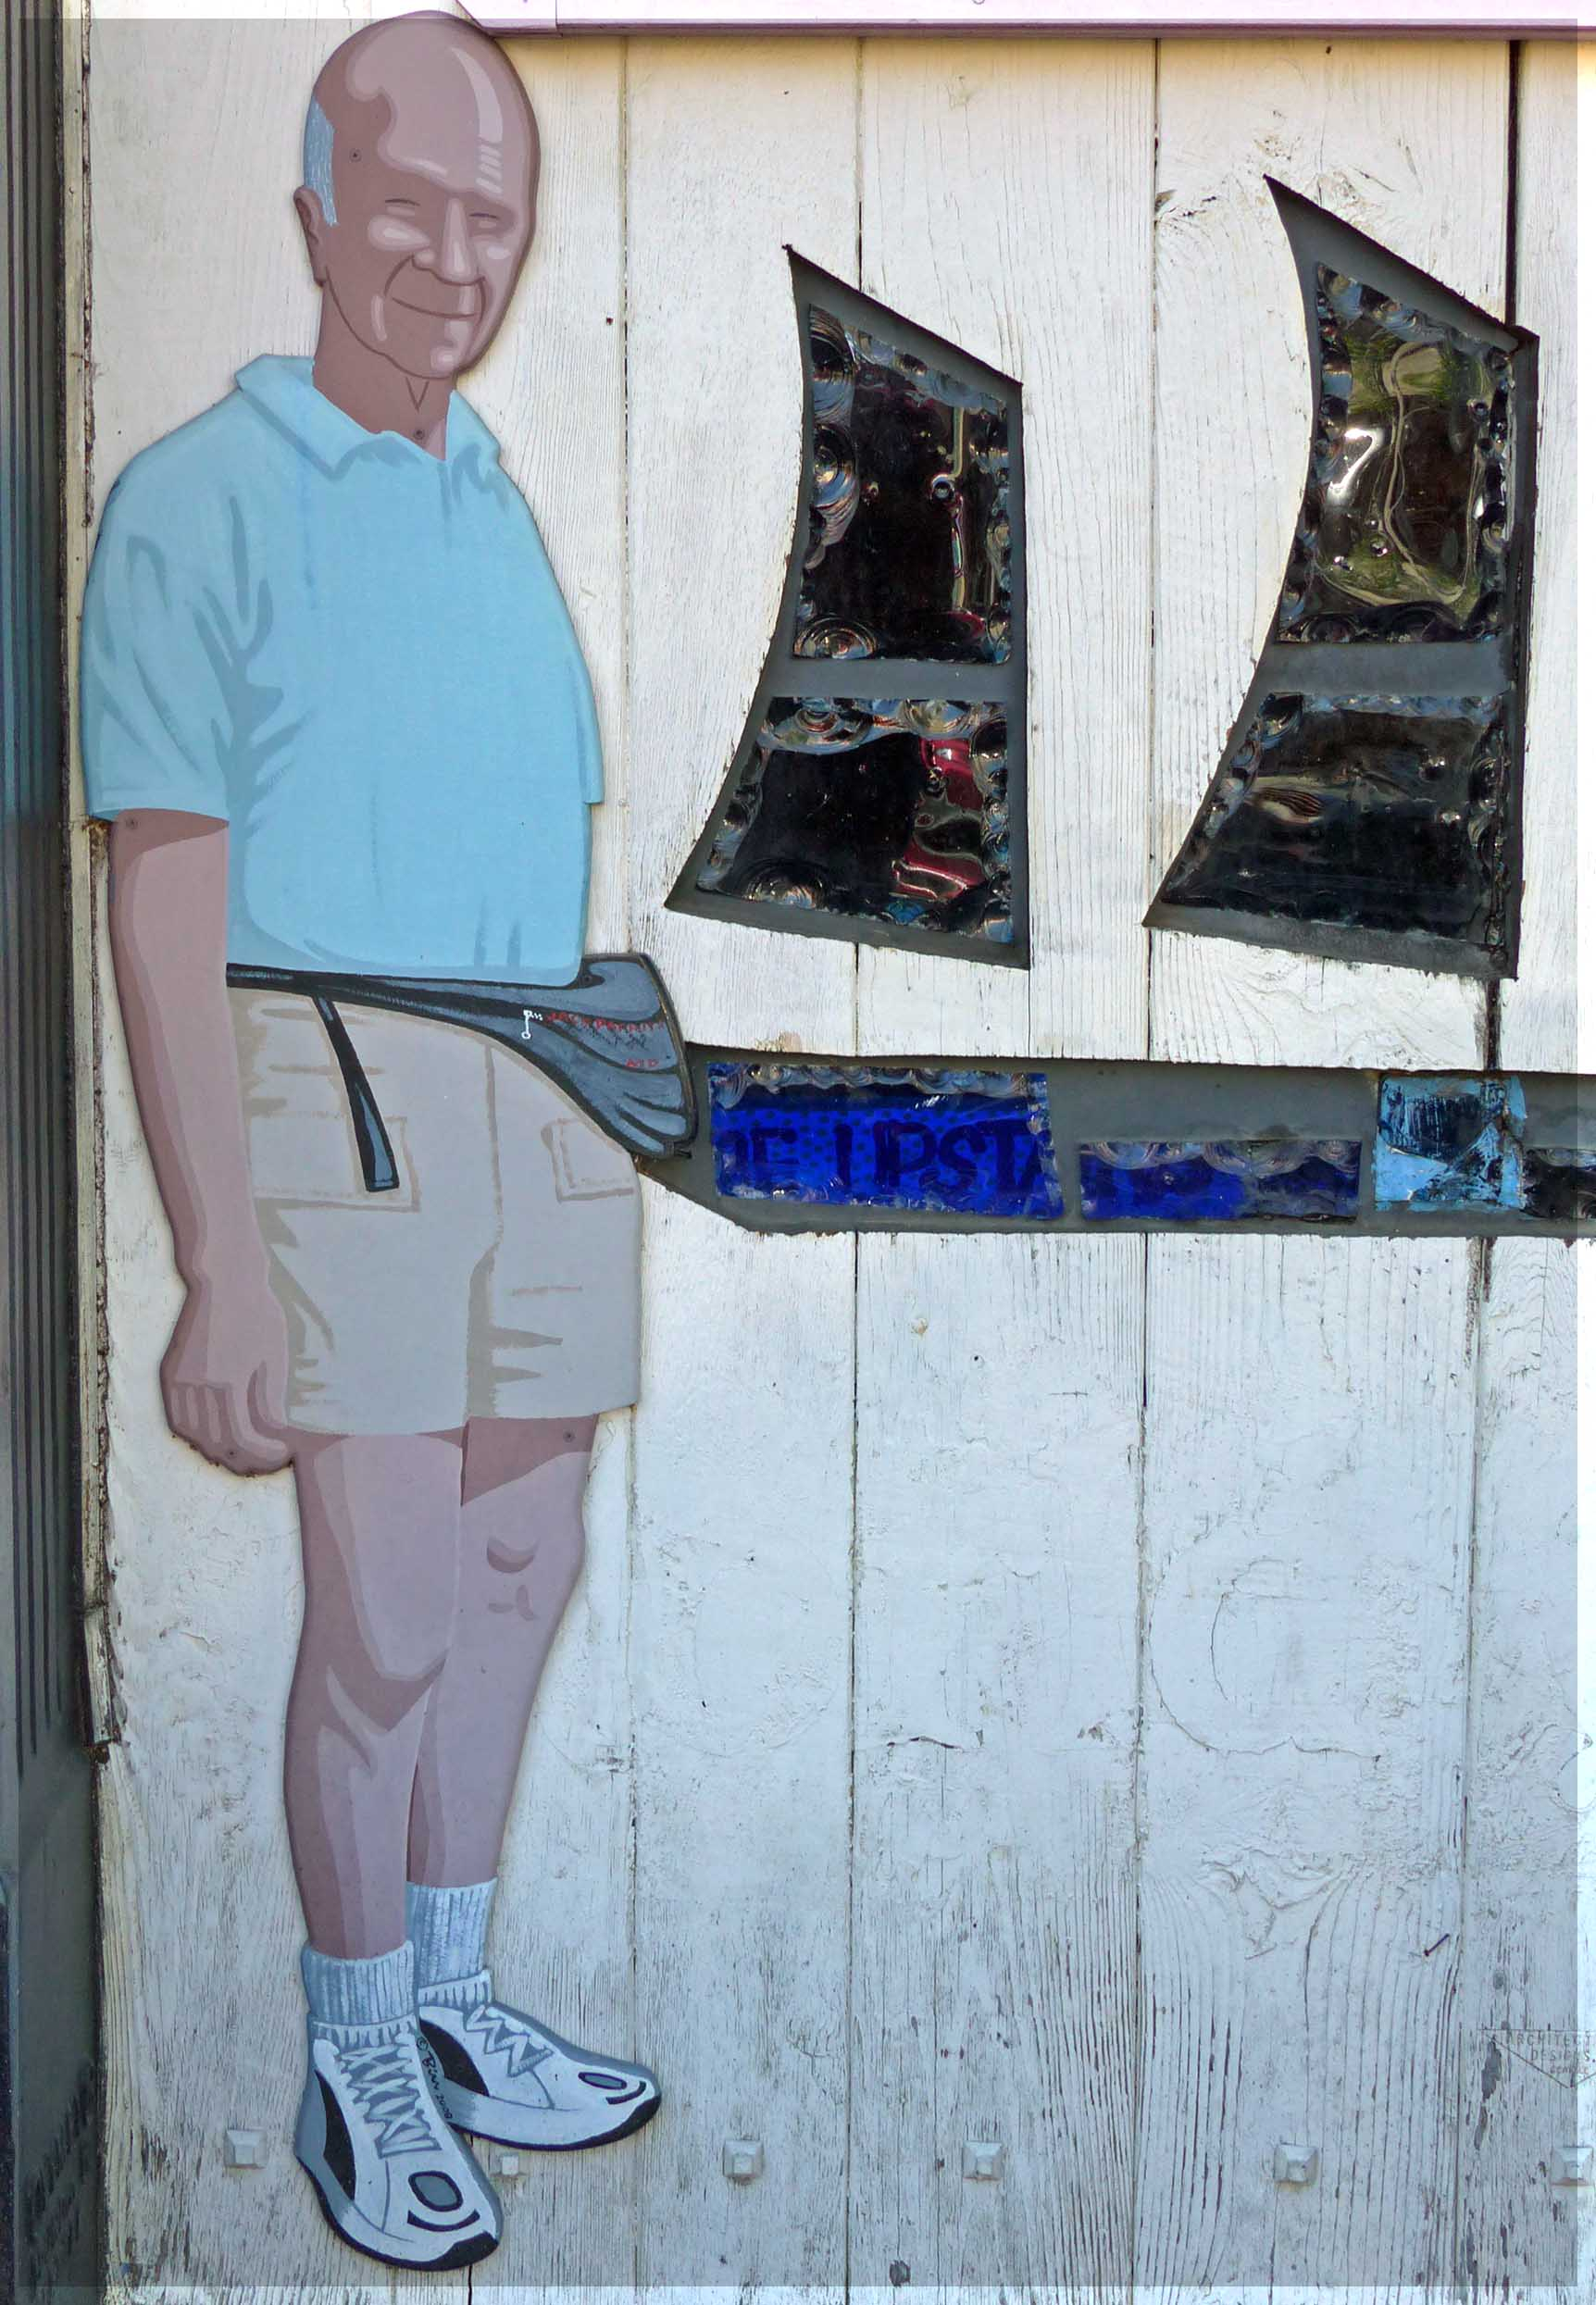 Mural of man in shorts and trainers